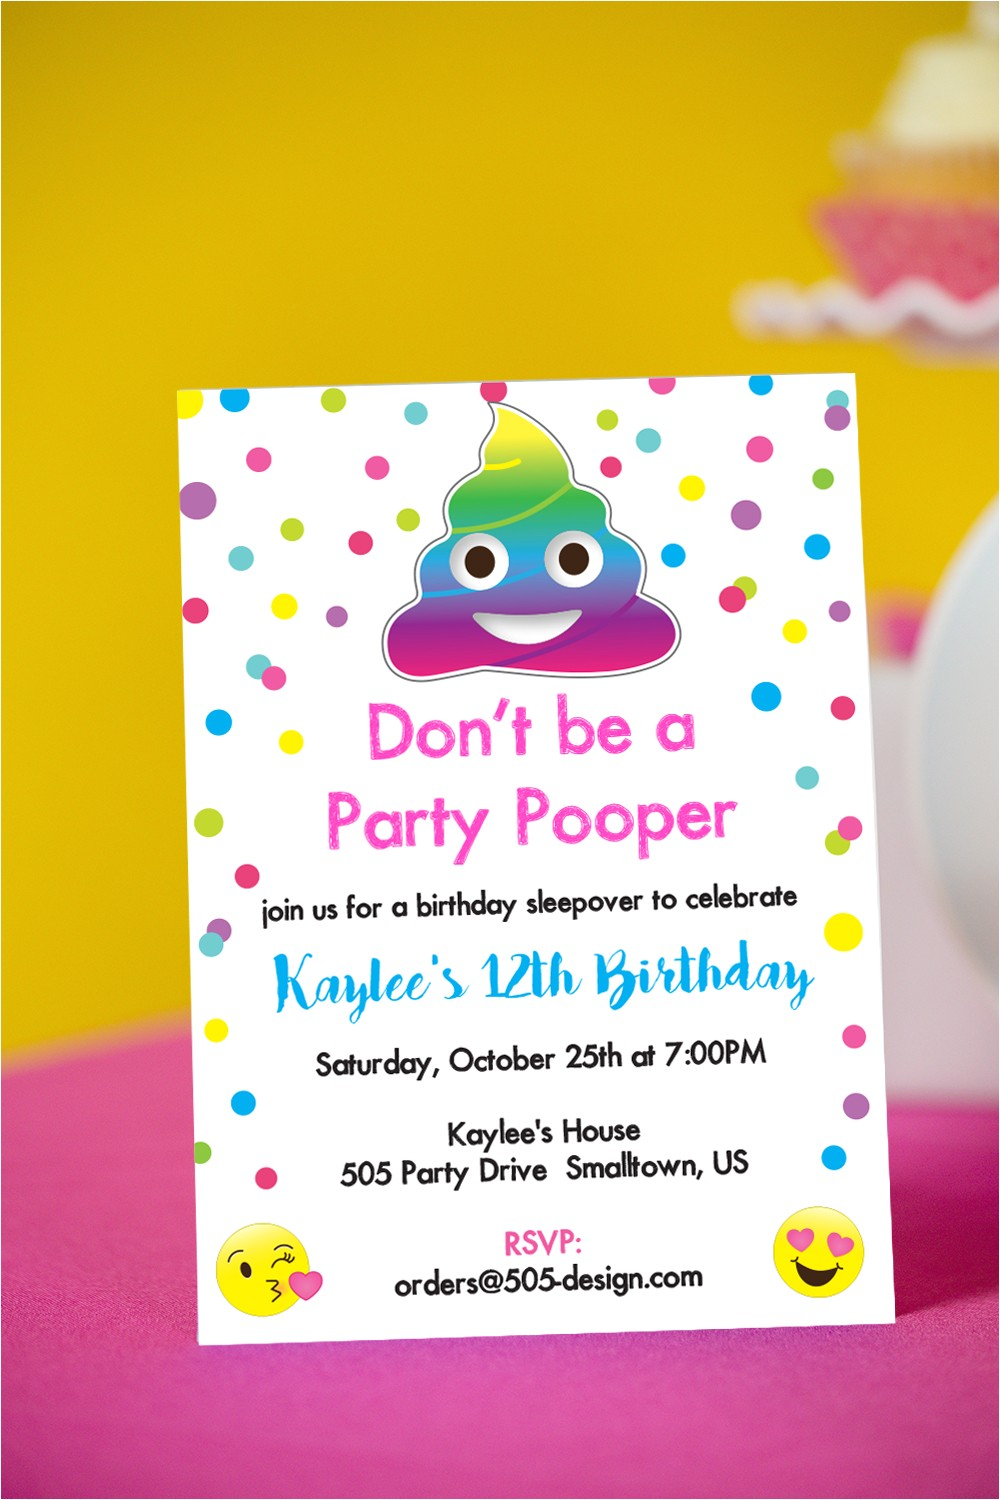 party pooper invitation rainbow poop emoji invitation